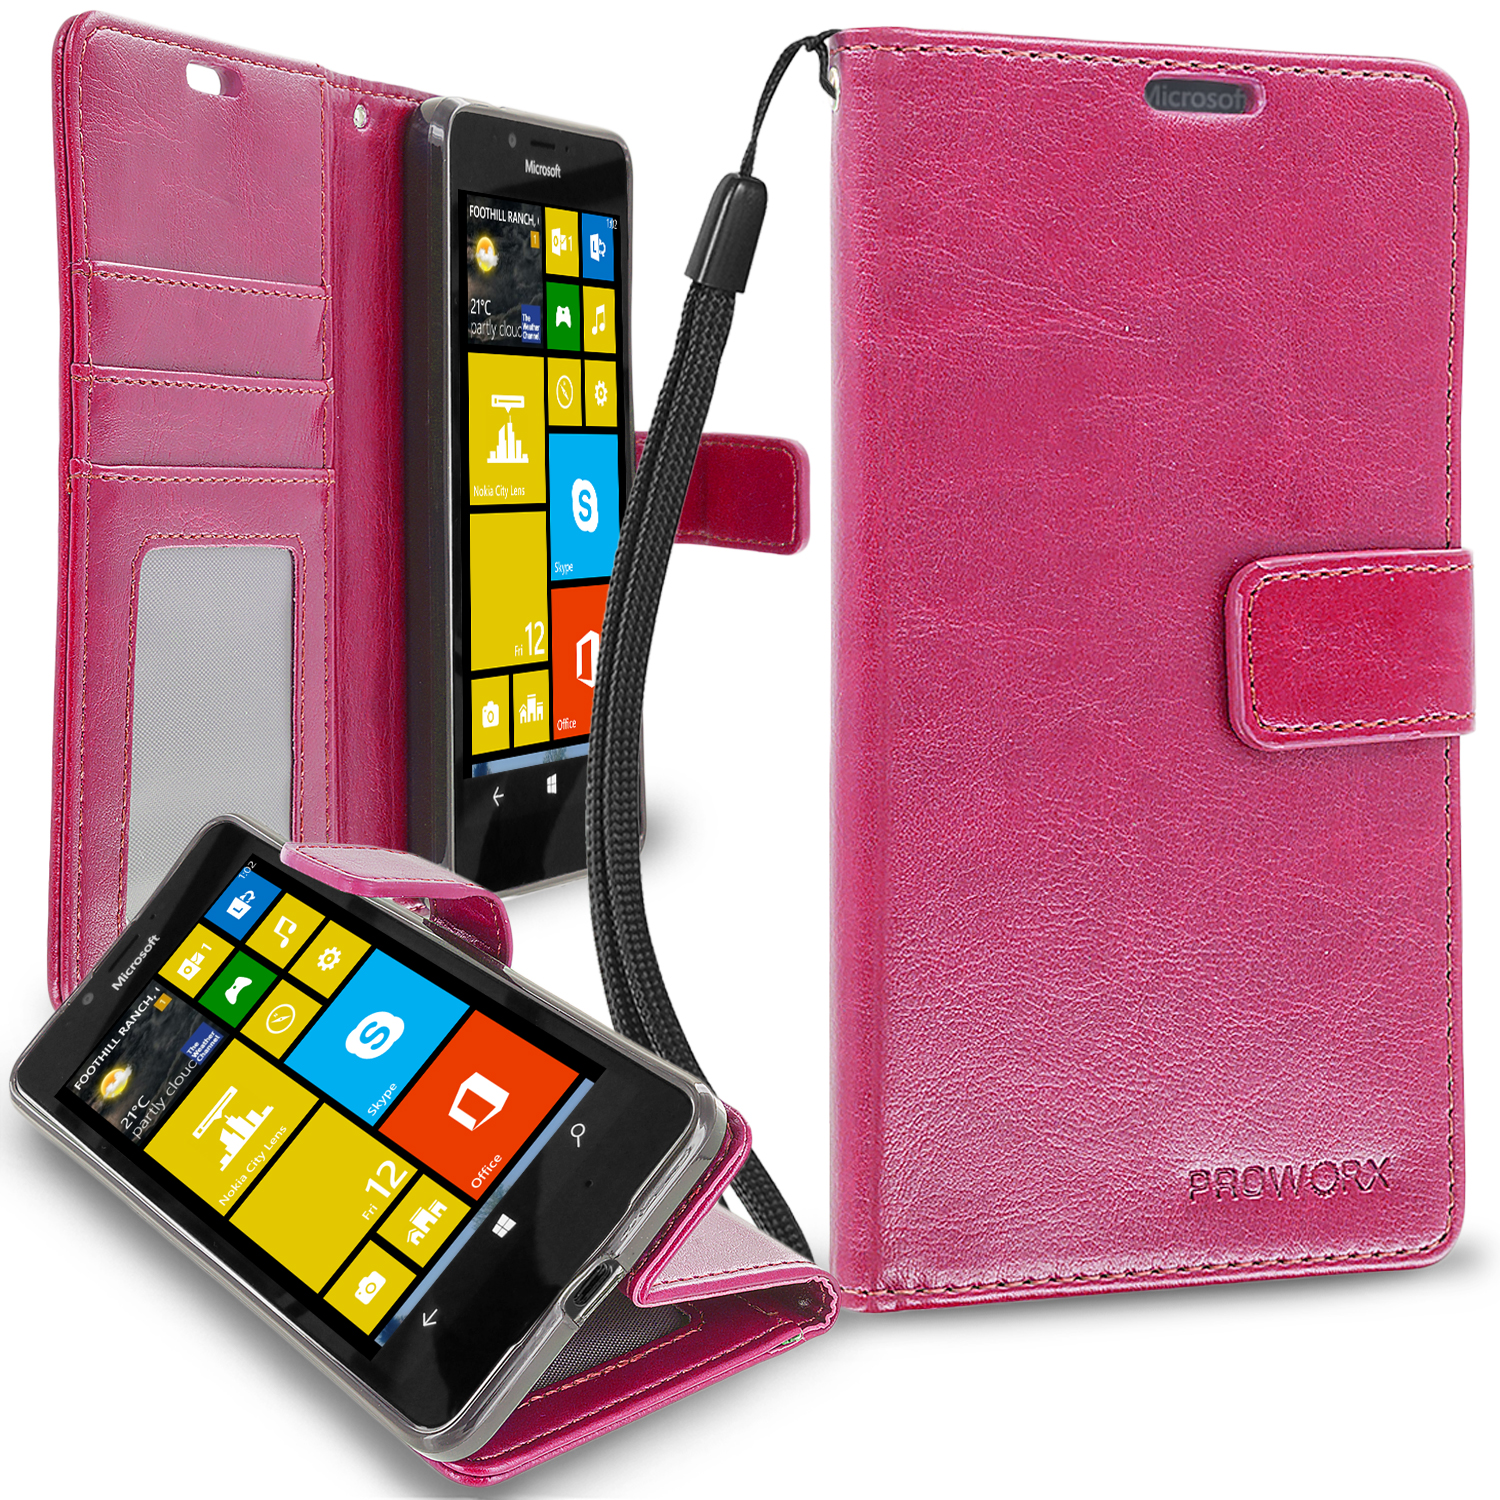 Microsoft Lumia 650 Hot Pink ProWorx Wallet Case Luxury PU Leather Case Cover With Card Slots & Stand